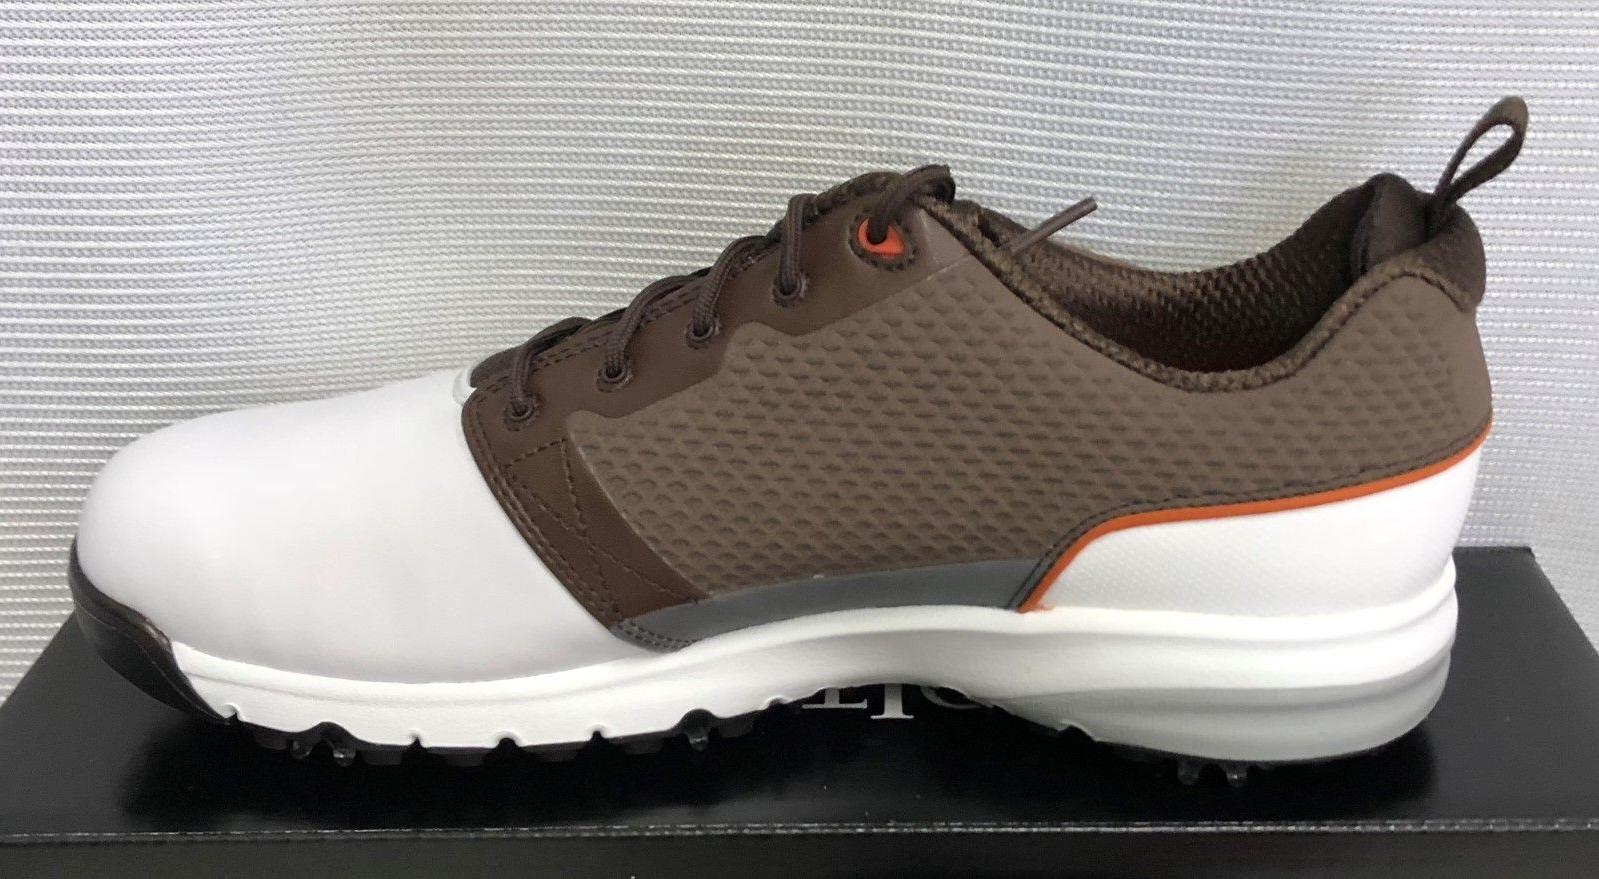 FootJoy Mens Shoes - White Brown - - in Box